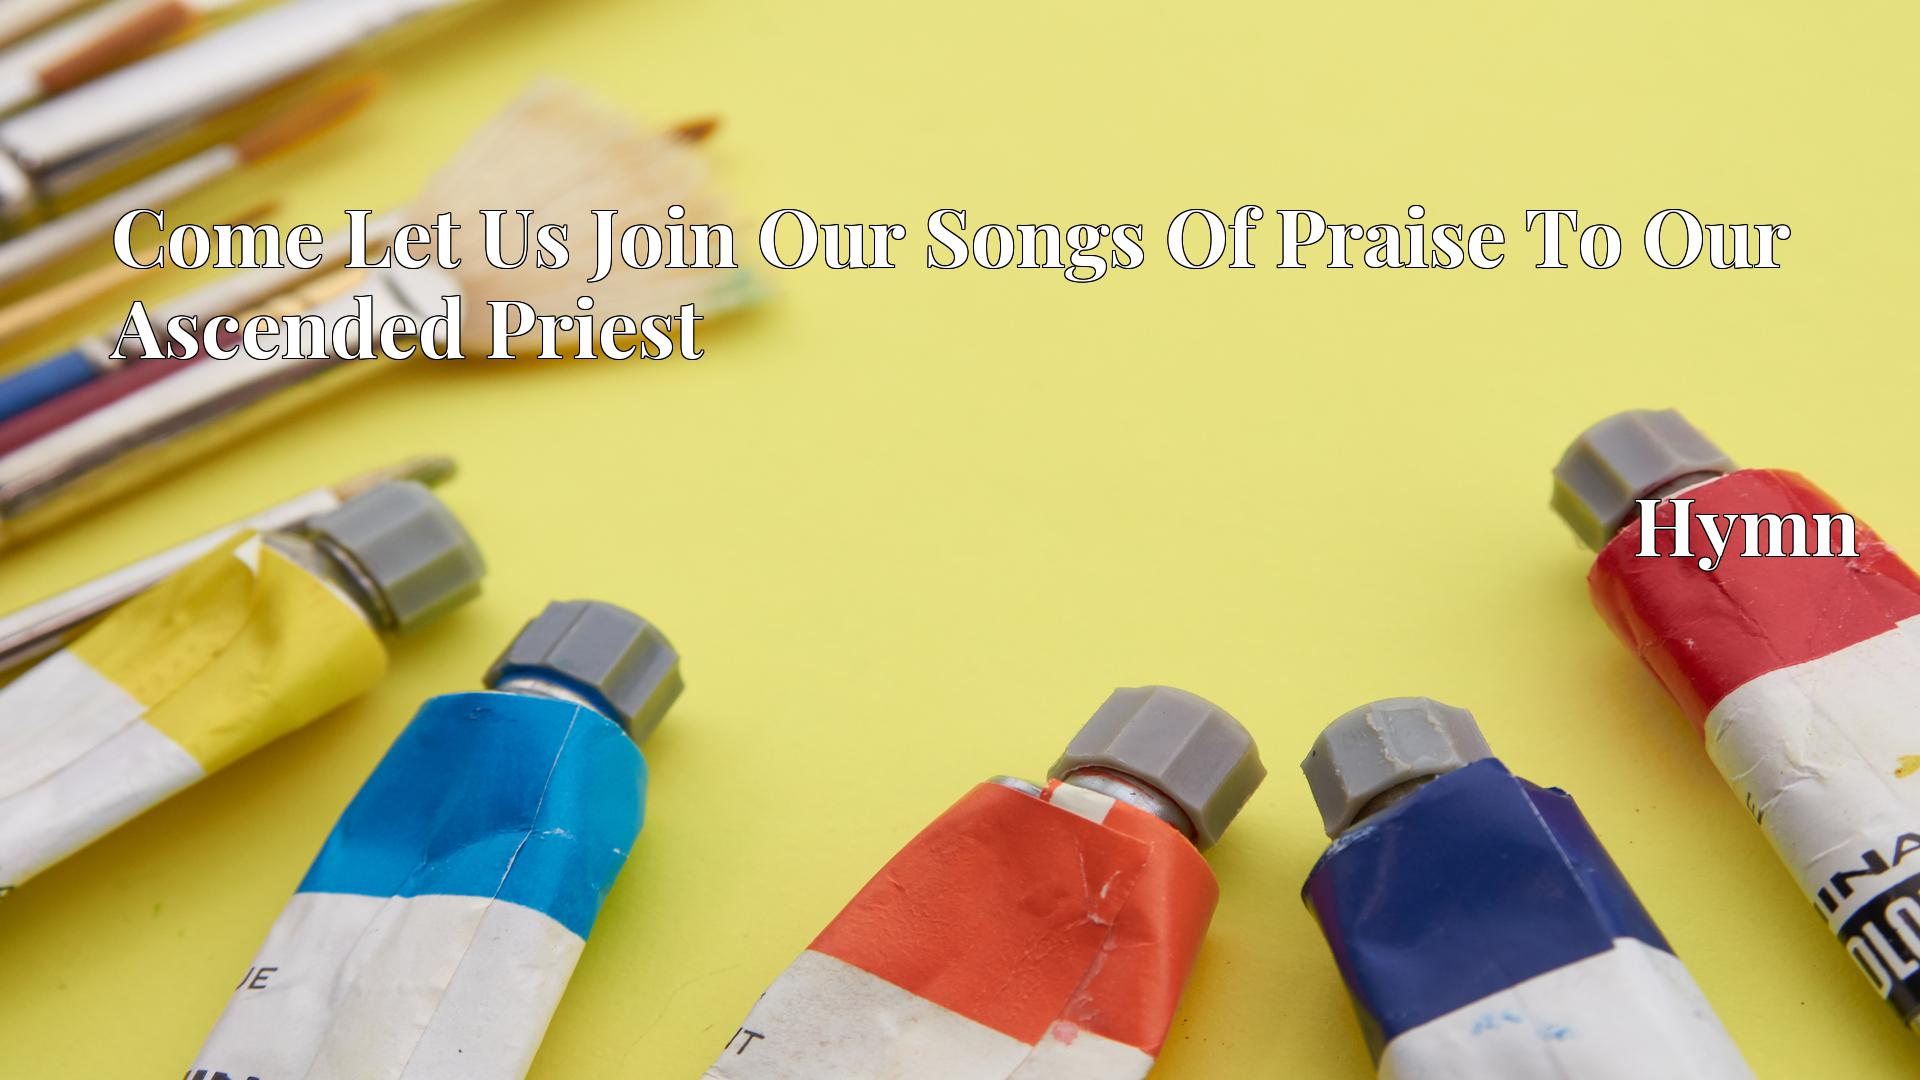 Come Let Us Join Our Songs Of Praise To Our Ascended Priest - Hymn